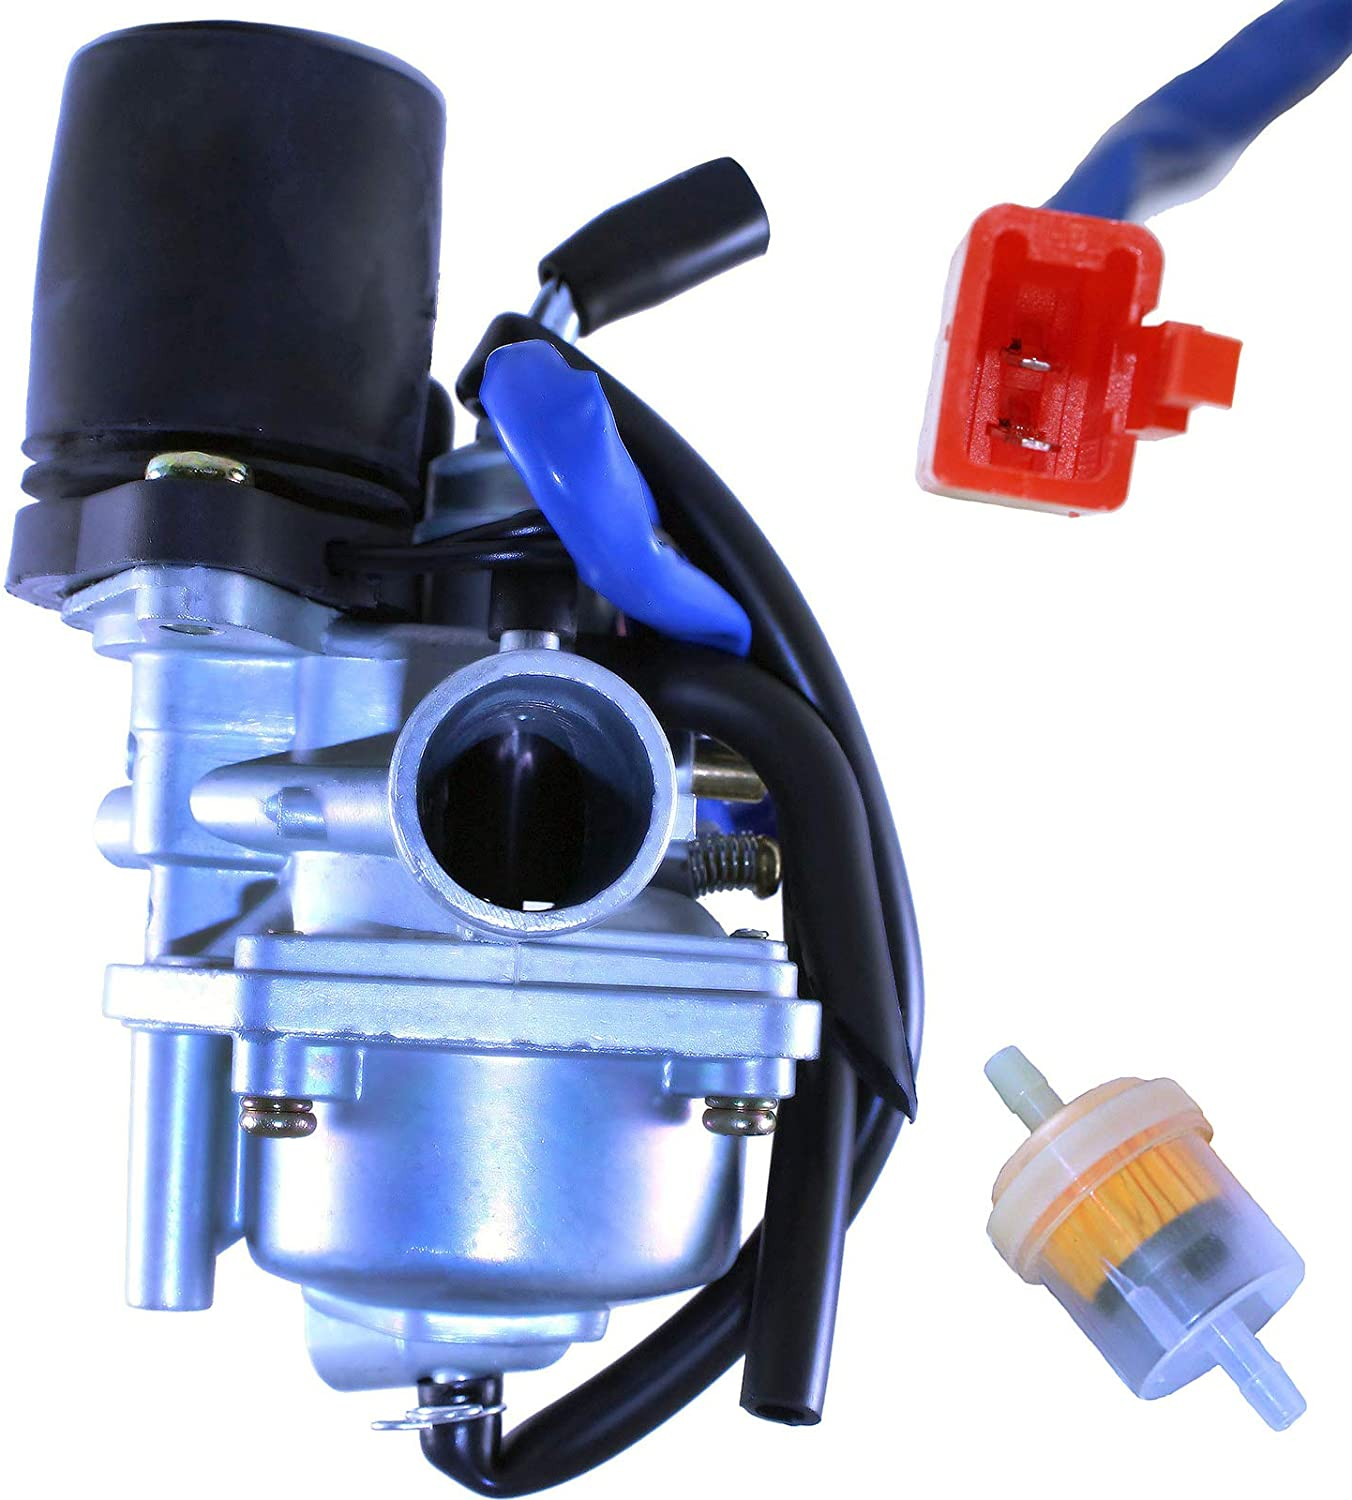 GLENPARTS Carburetor for CPI City Oliver 50cc 49cc Scooter Moped 2 Cycle Genuine Buddy 50cc